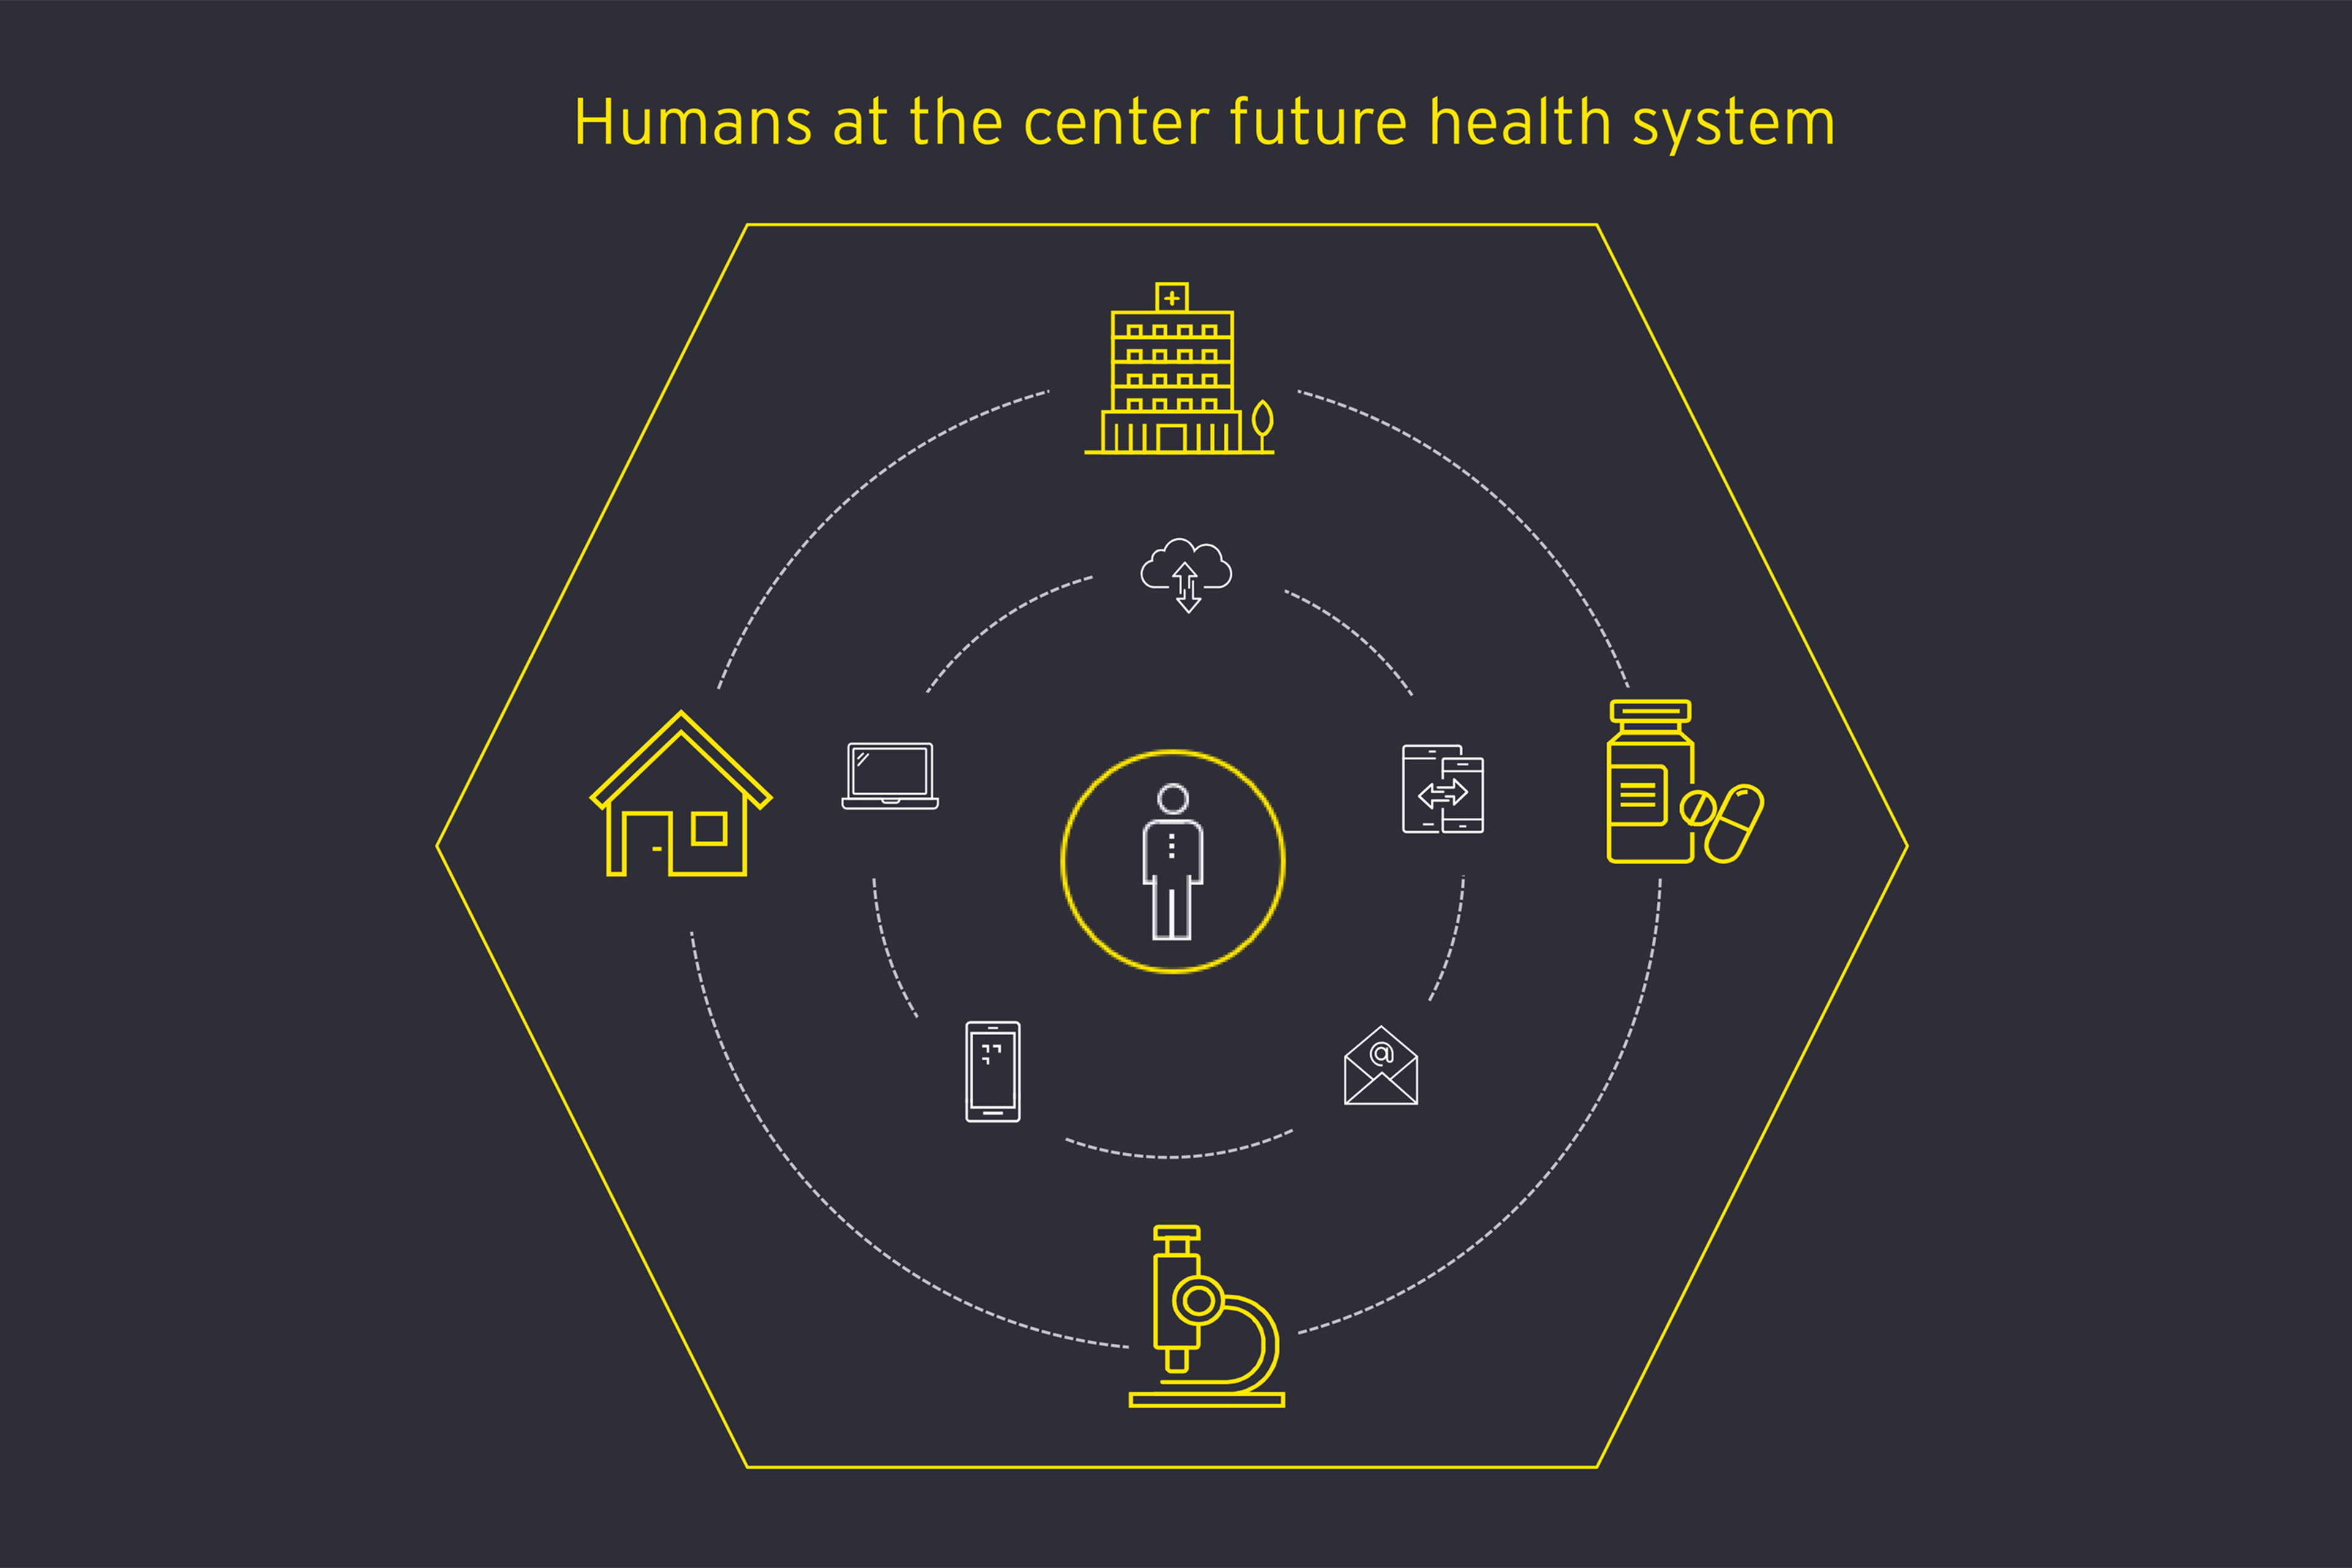 Human at the center infographic